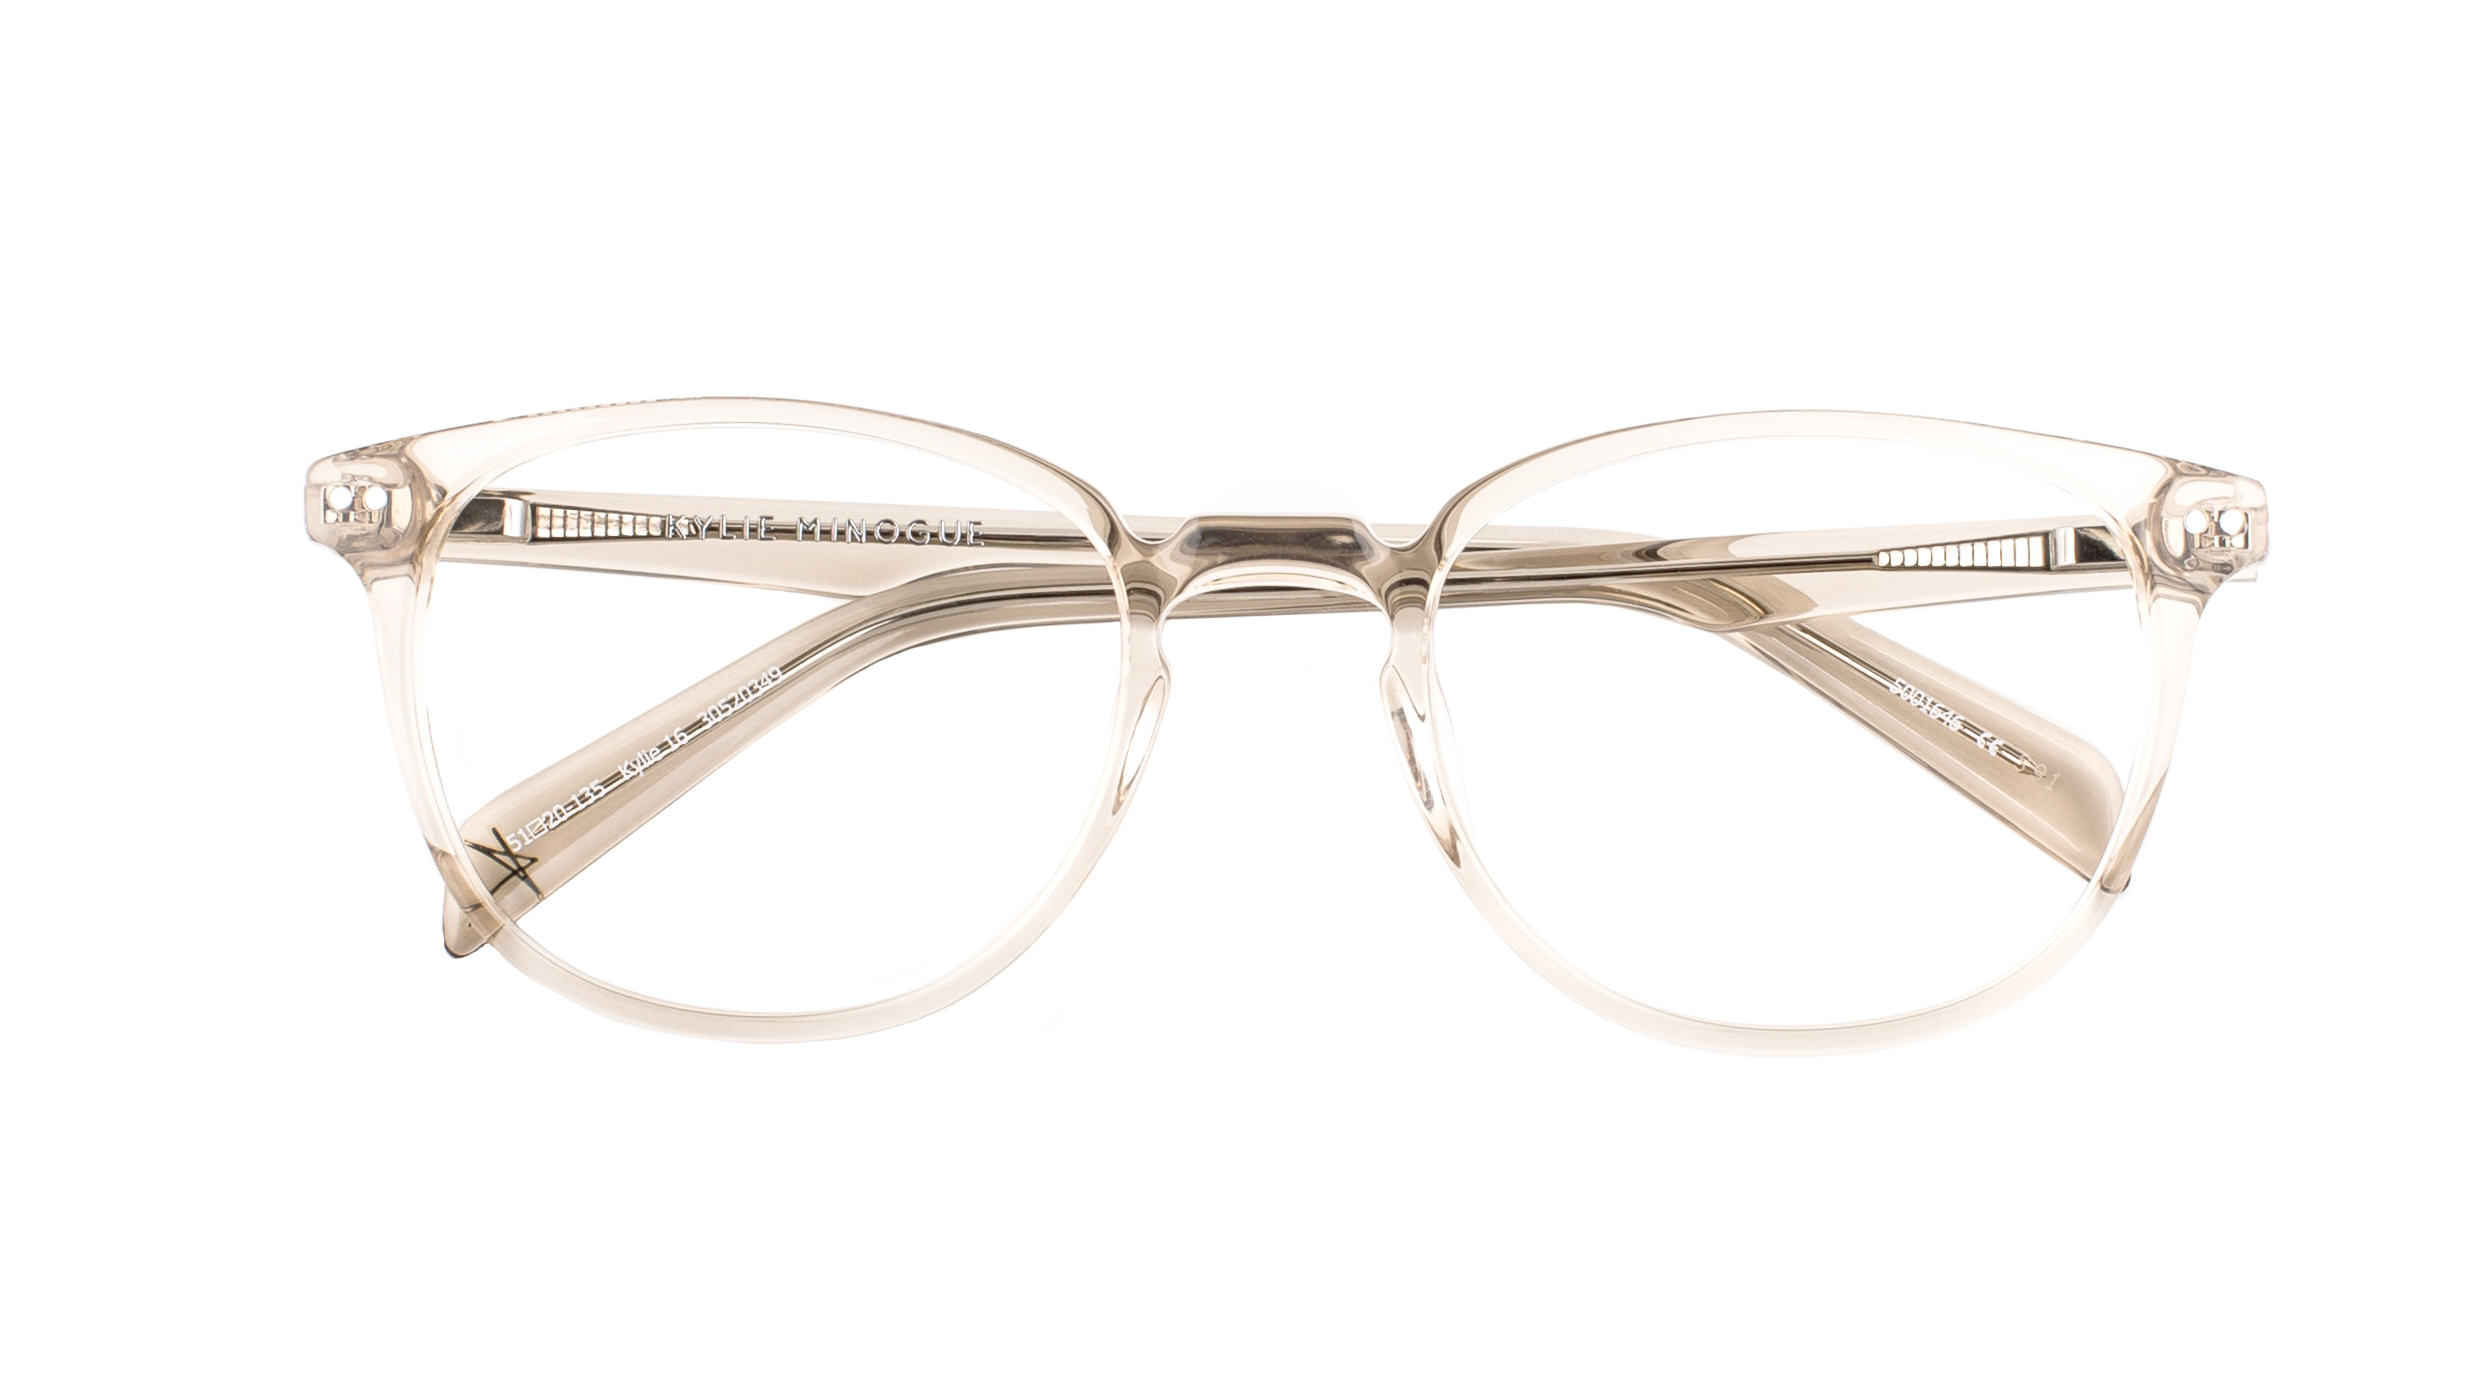 Kylie Minogue Eyewear_Kylie 16_SKU 30520349_RRP 2 pairs from $369